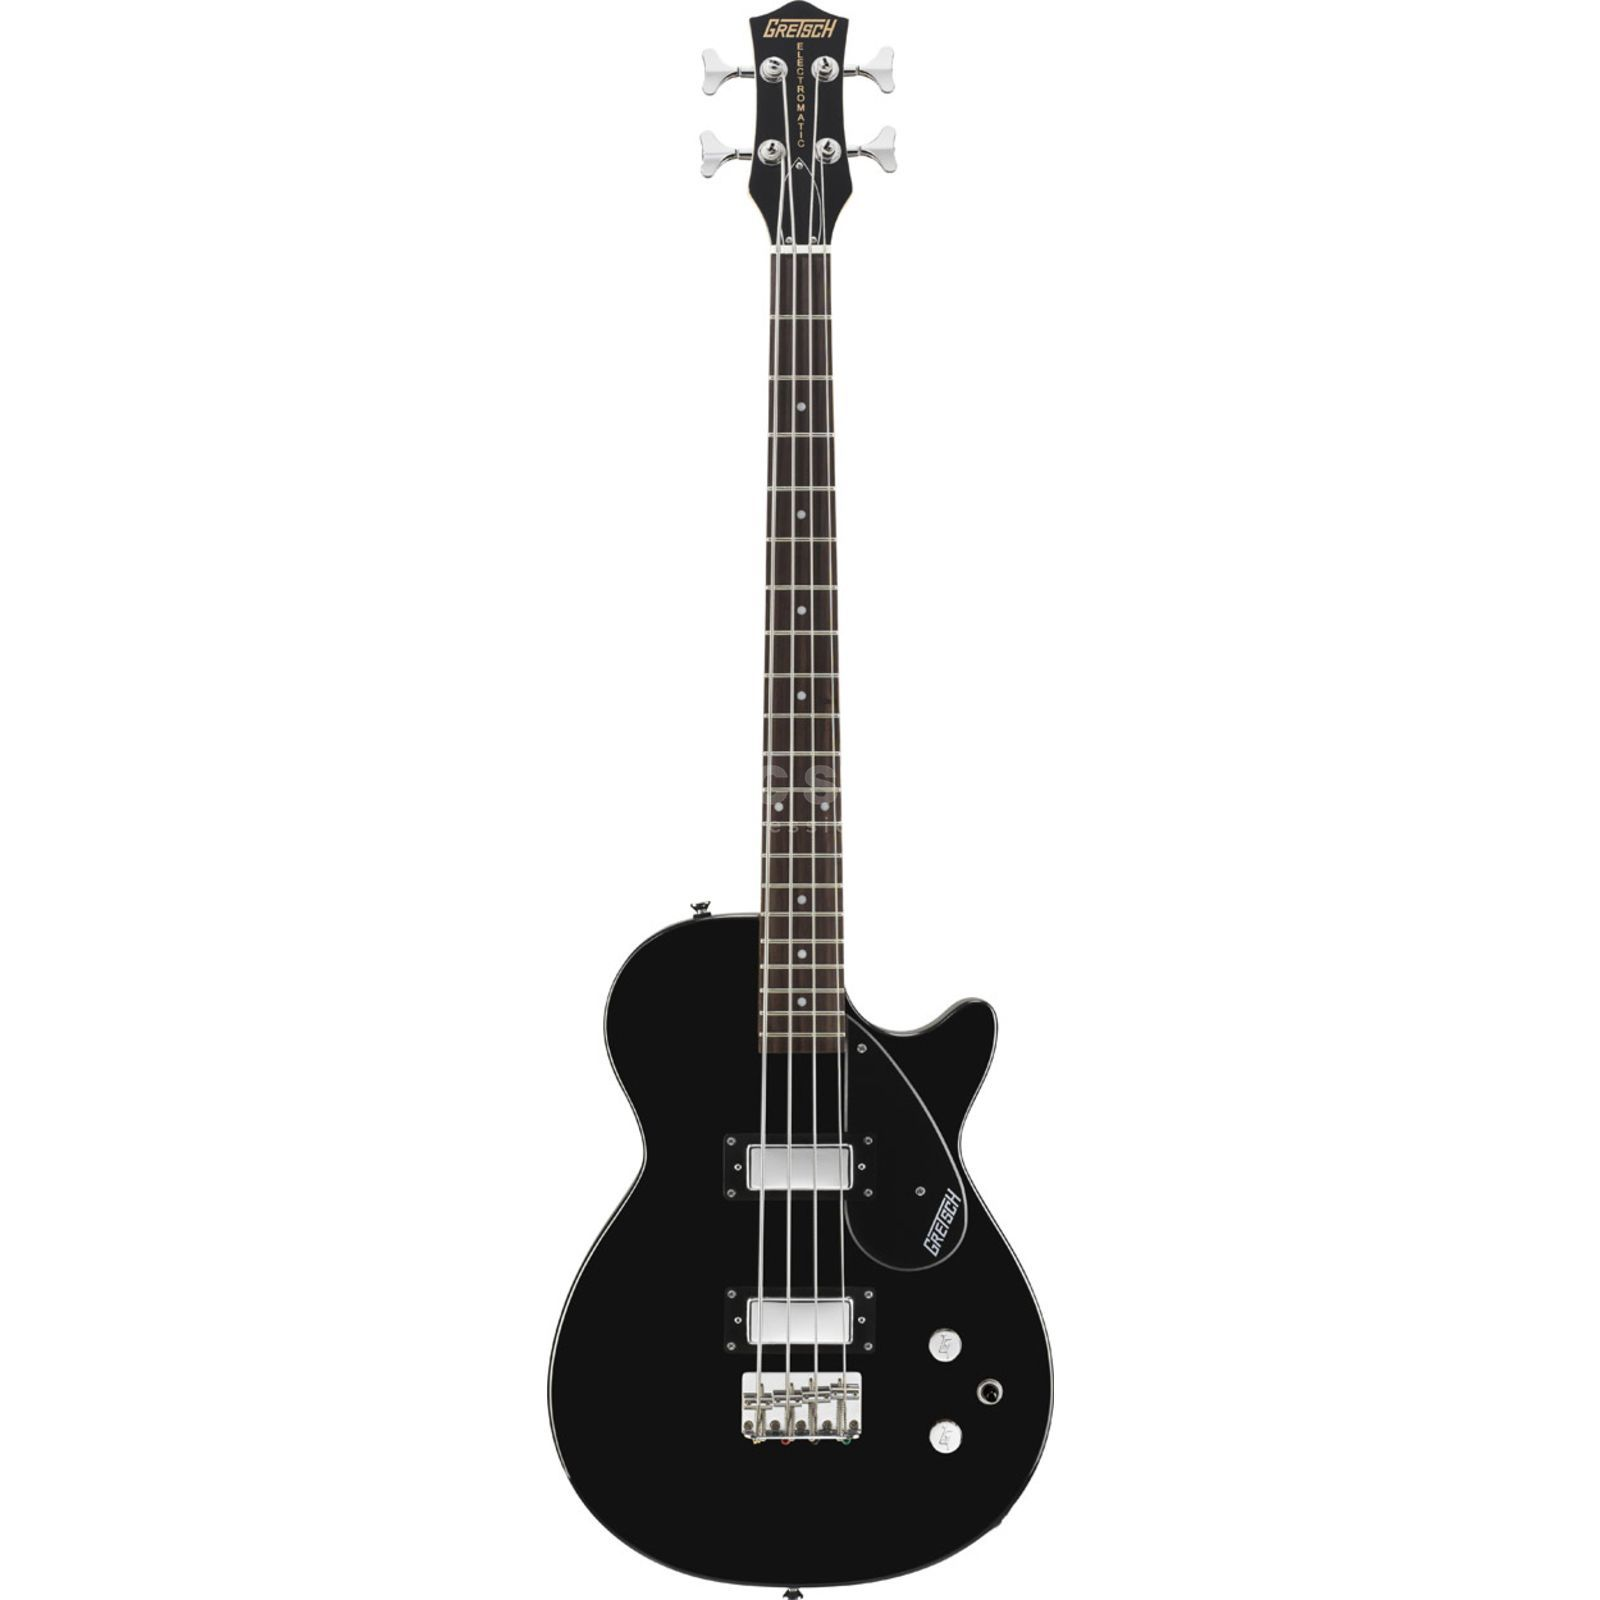 Gretsch G2220 Junior Jet II Bass Guita r, Black   Immagine prodotto